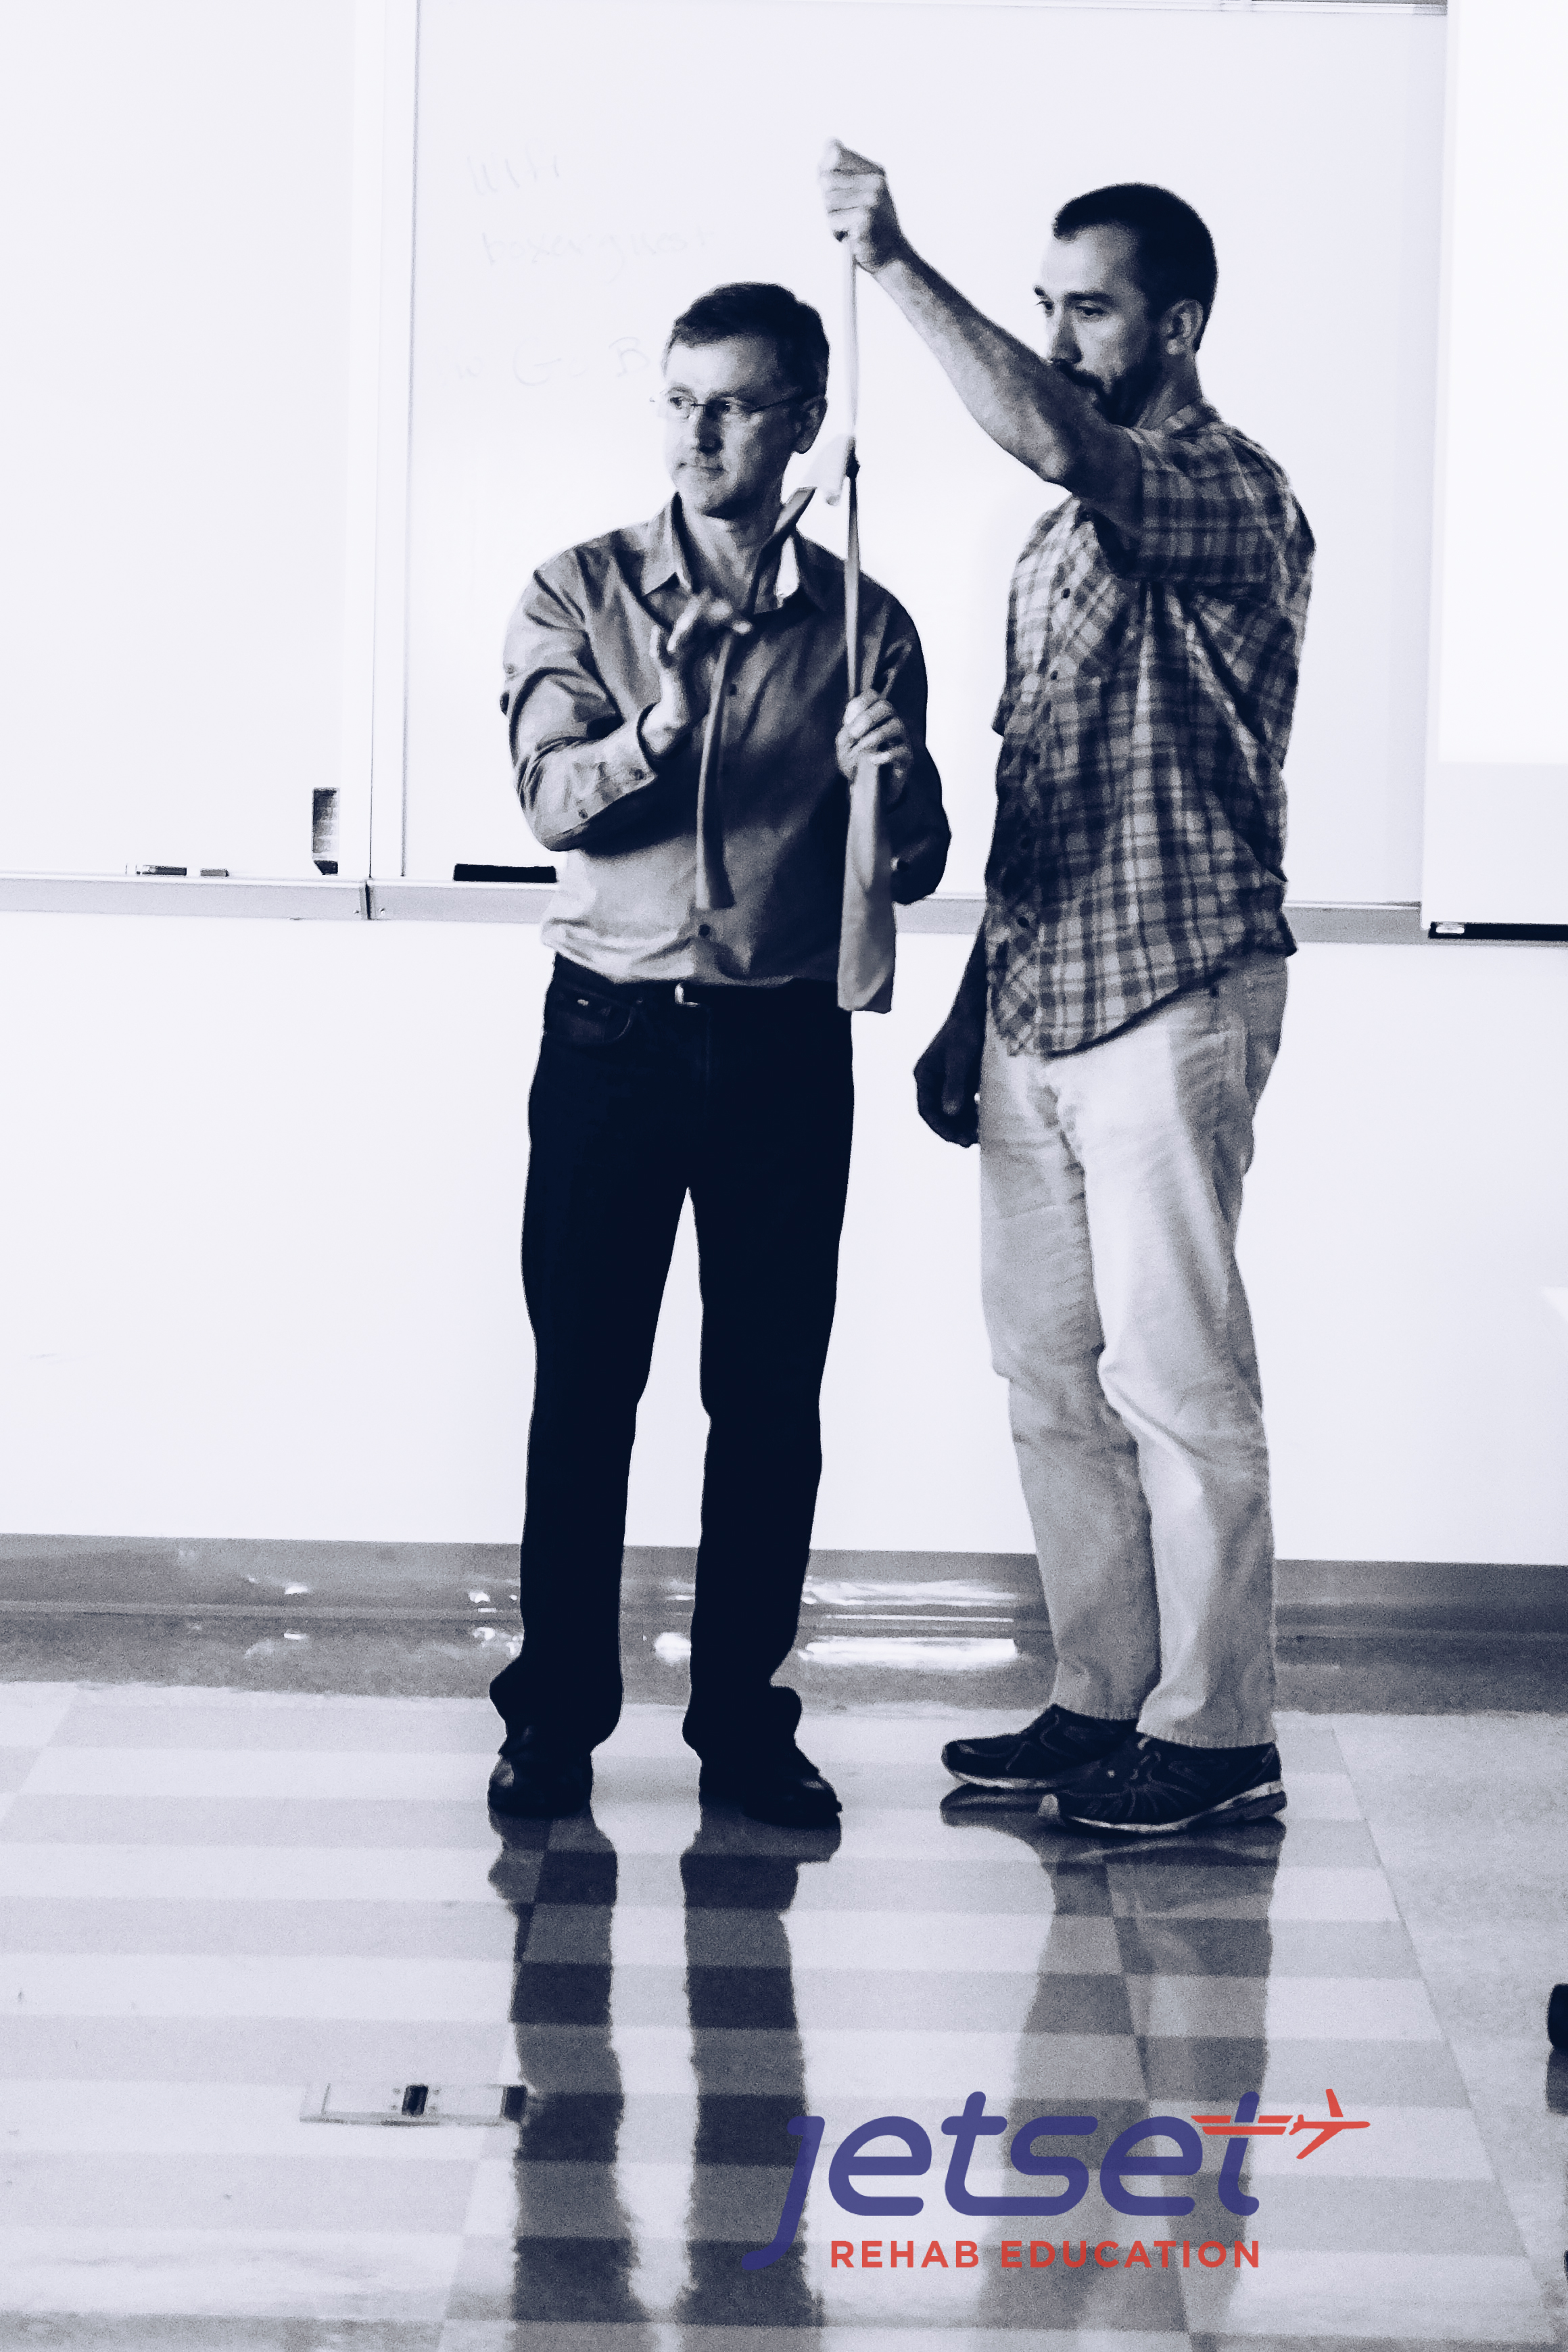 We start the morning learning how tension on a contralateral nerve can take the tension off of a painful nerve. See the video below where Michael Shacklock (left) explains this concept.